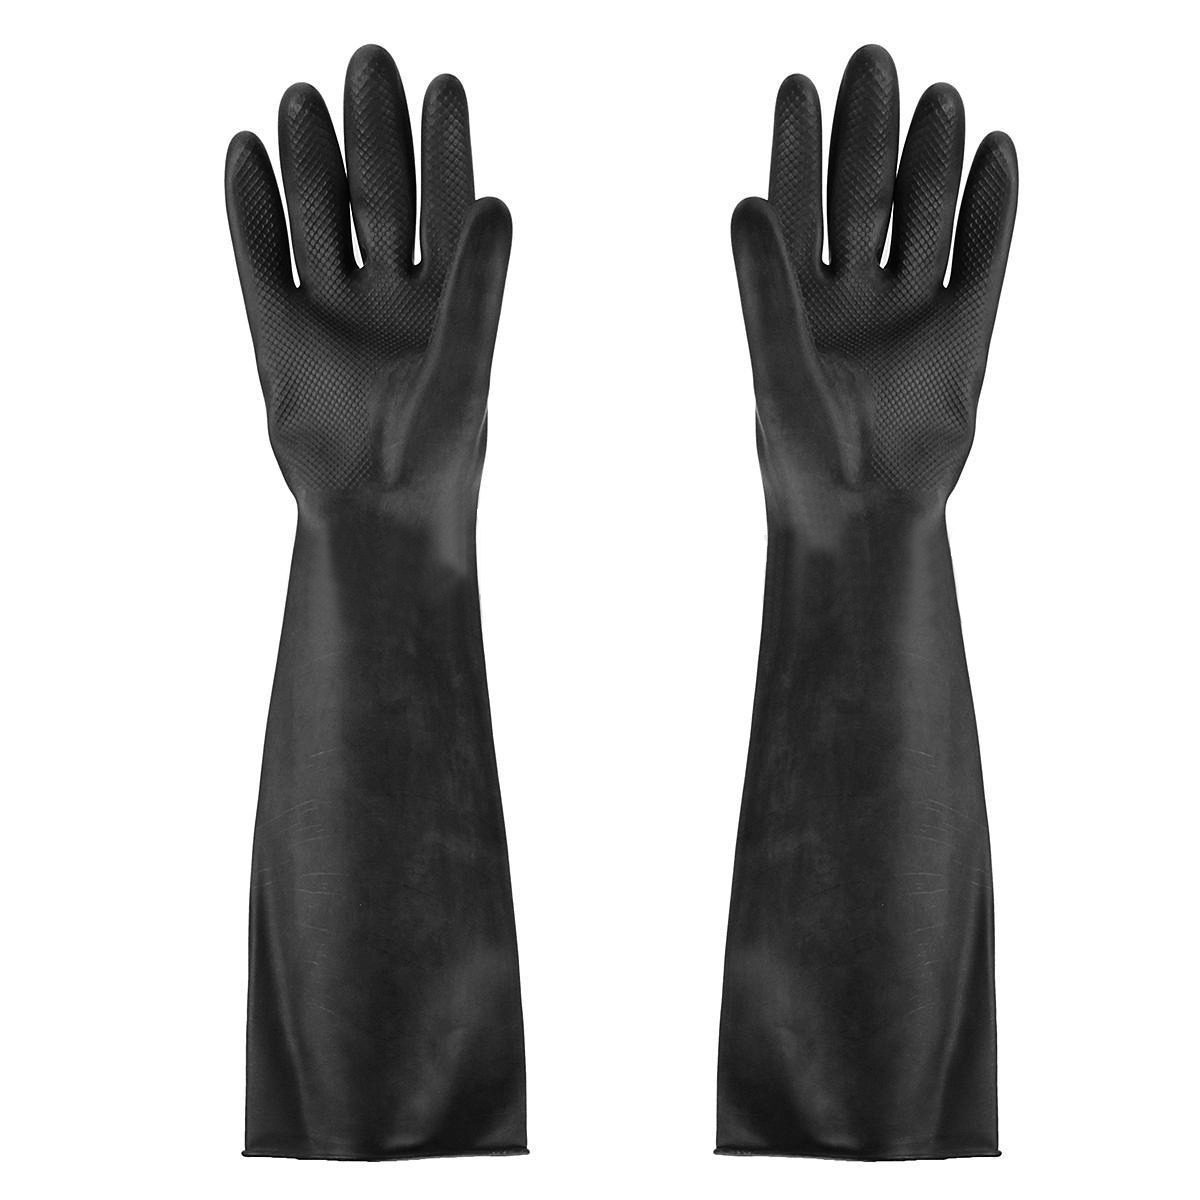 Black Long Protective Garden Industry Rubber Gloves Elastic Anti Acid Alkali Rubber Work Comfortable Chemical Gloves 60cm Mayitr strong 0 35mmpb medical x ray protective gloves ray workplace use gloves lead rubber gloves